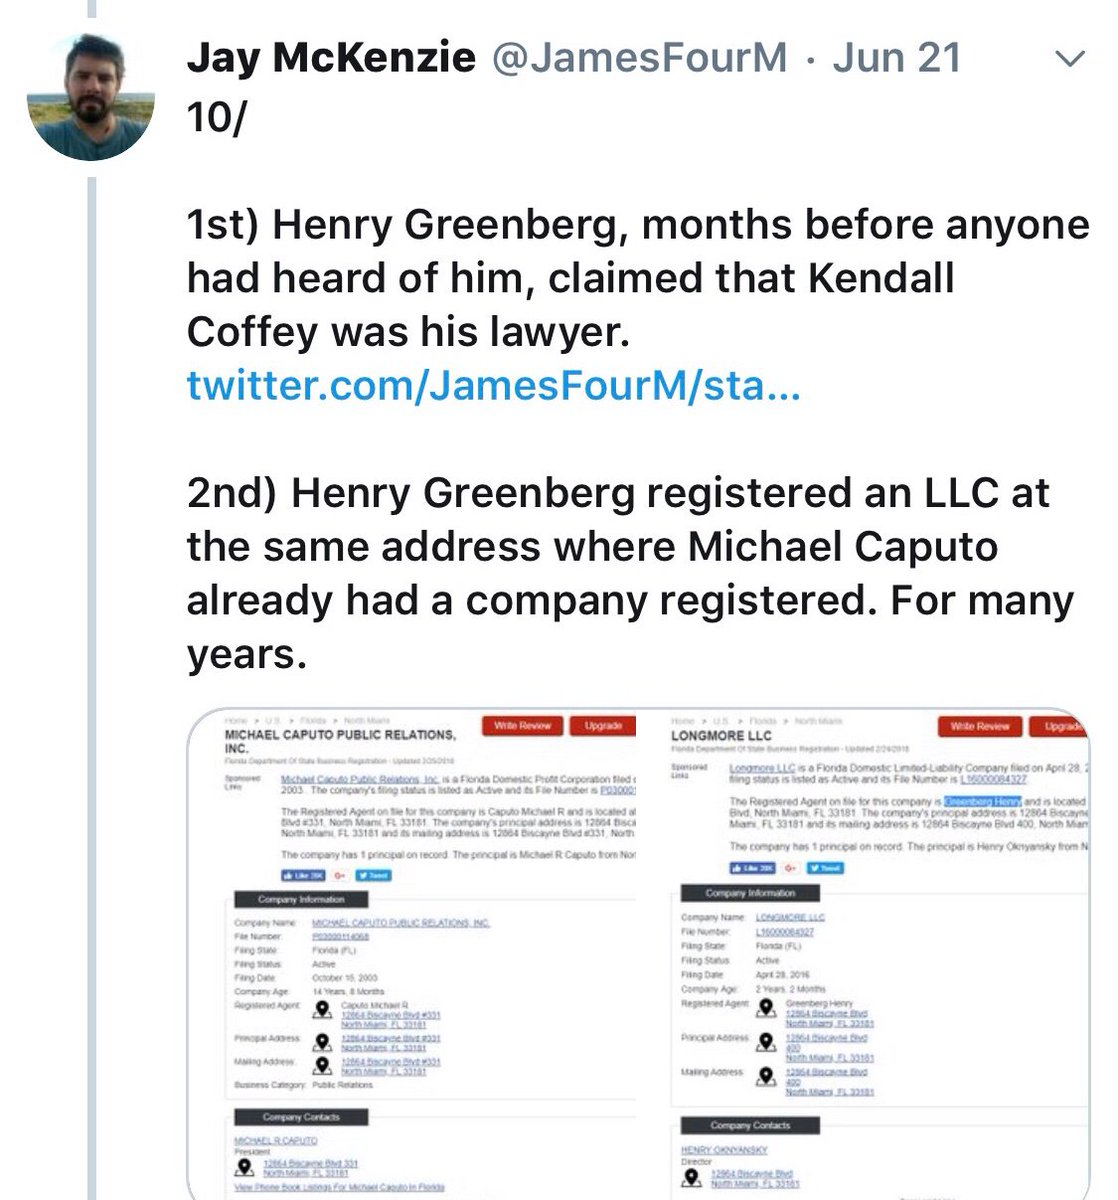 @ScottMStedman @BylineTimes Same setup as Michael Caputo with Russian he lied to Congress about? https://t.co/Ykn1FQLp5Z